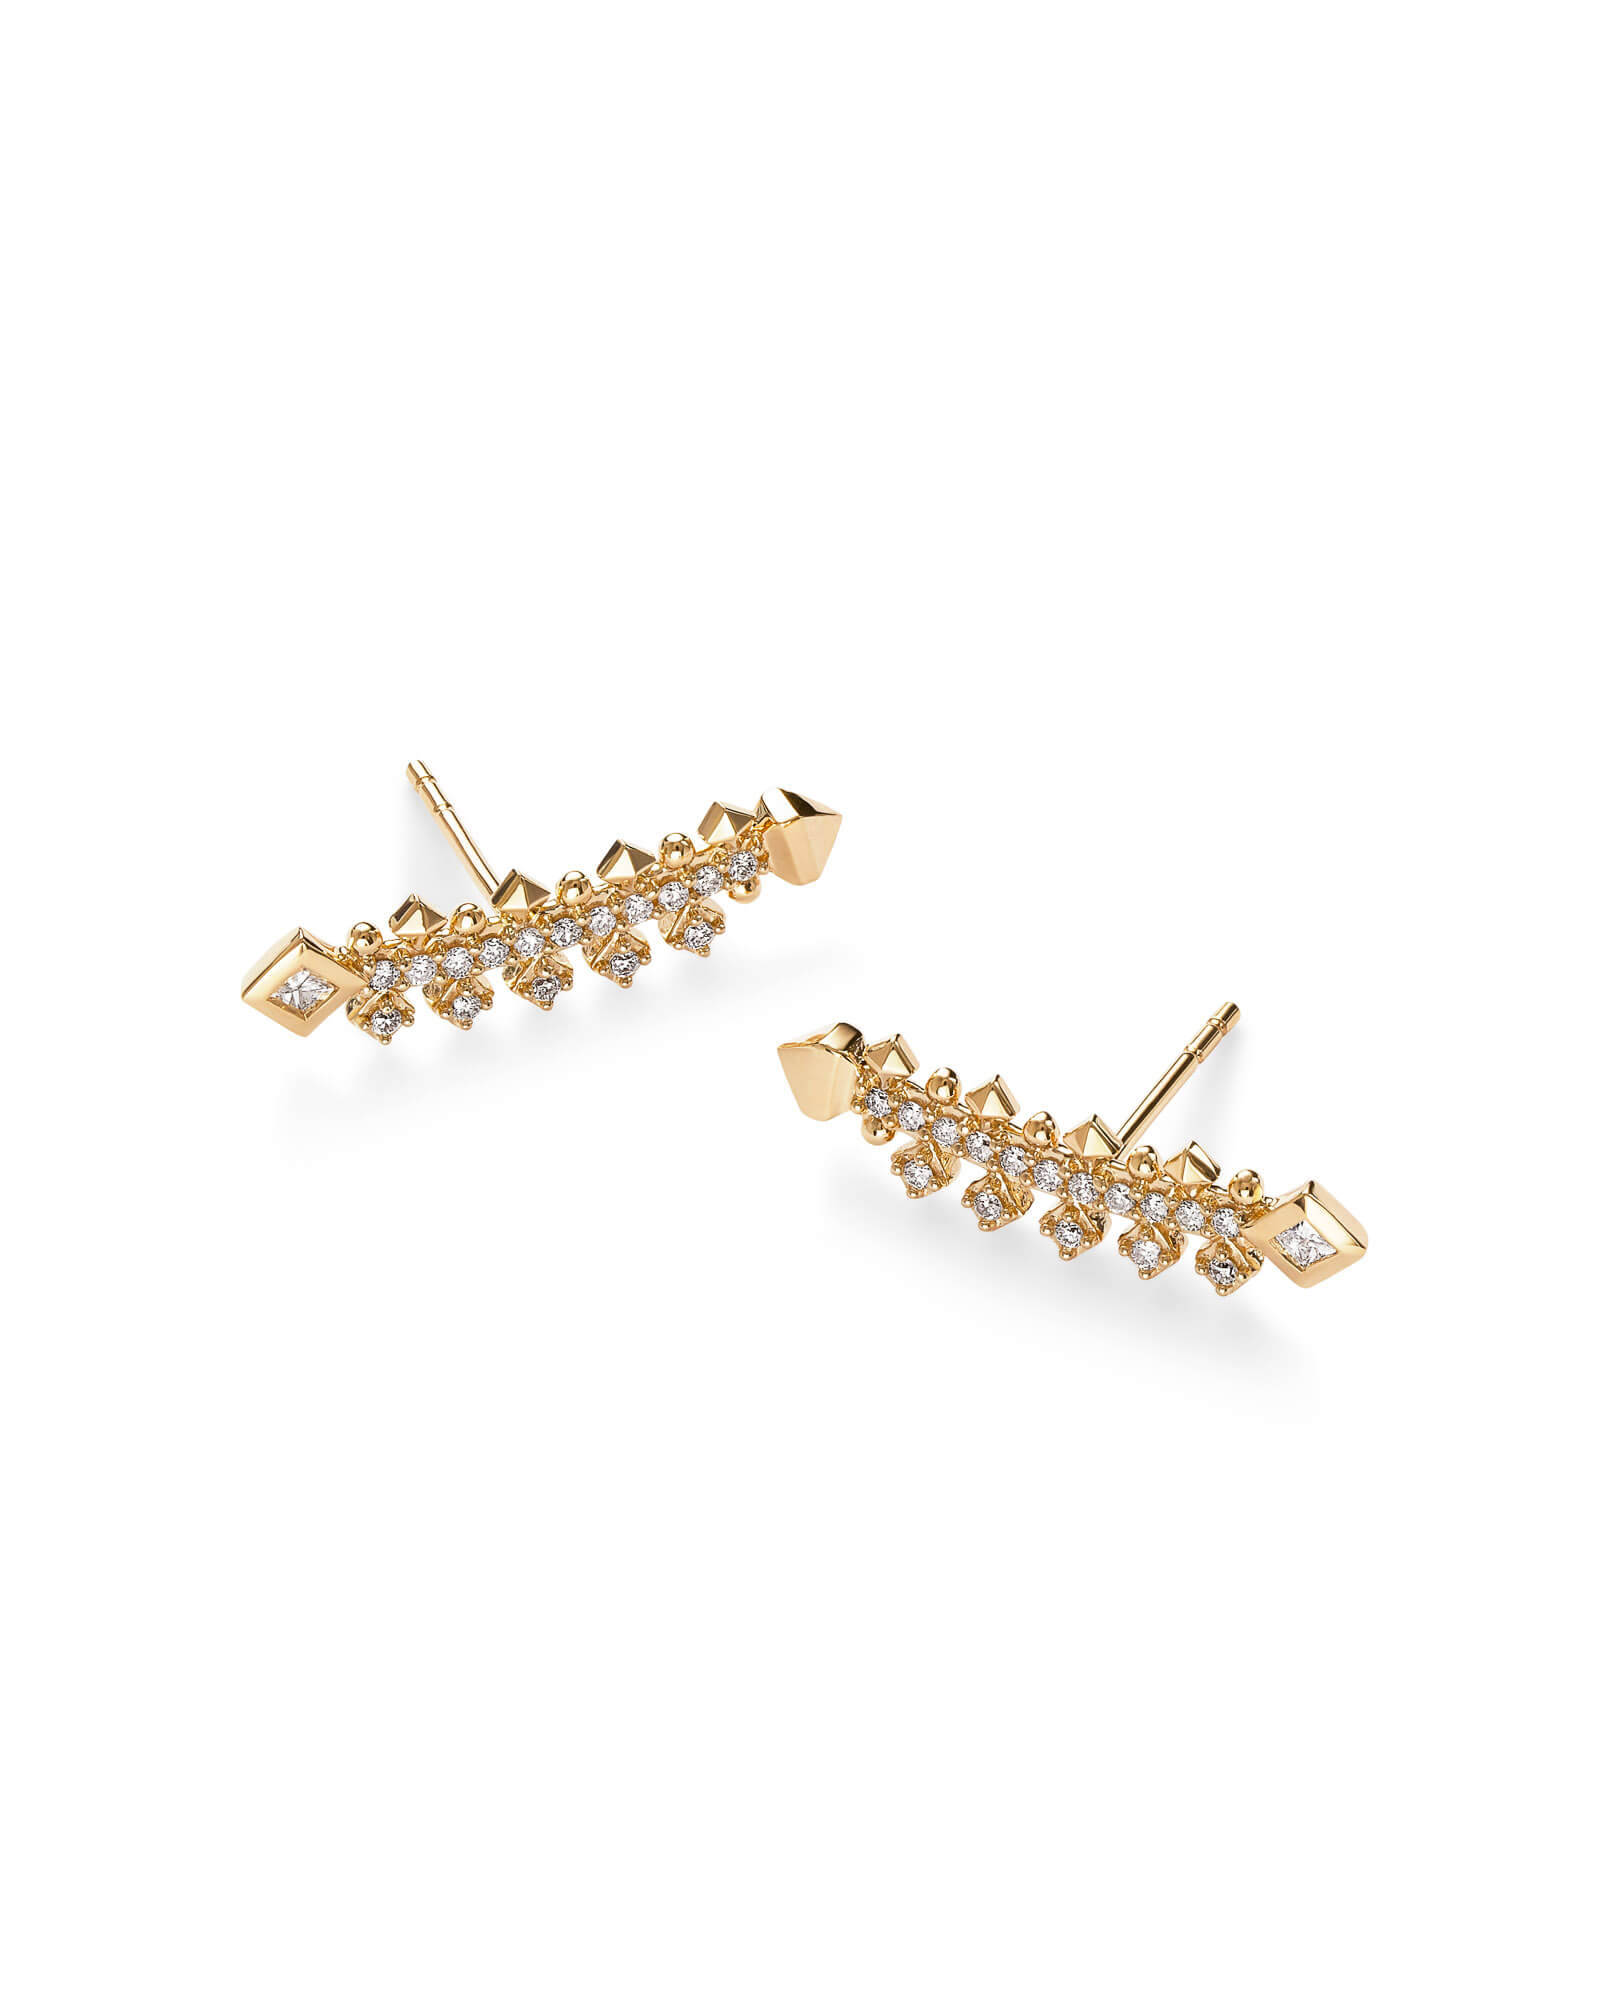 Indie 14k Yellow Gold Earrings in White Diamond